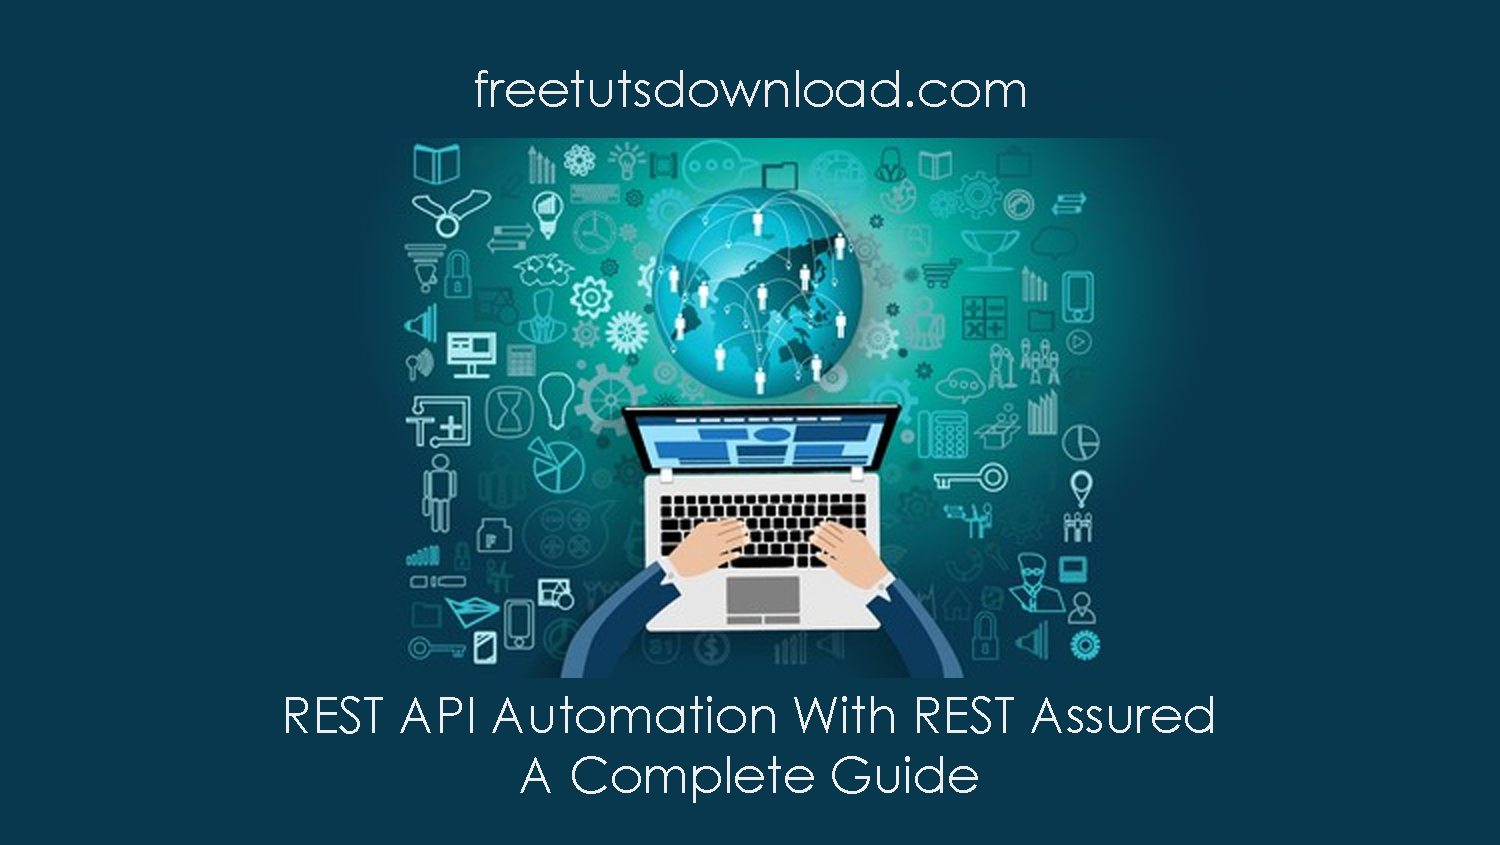 REST API Automation With REST Assured - A Complete Guide Free Download